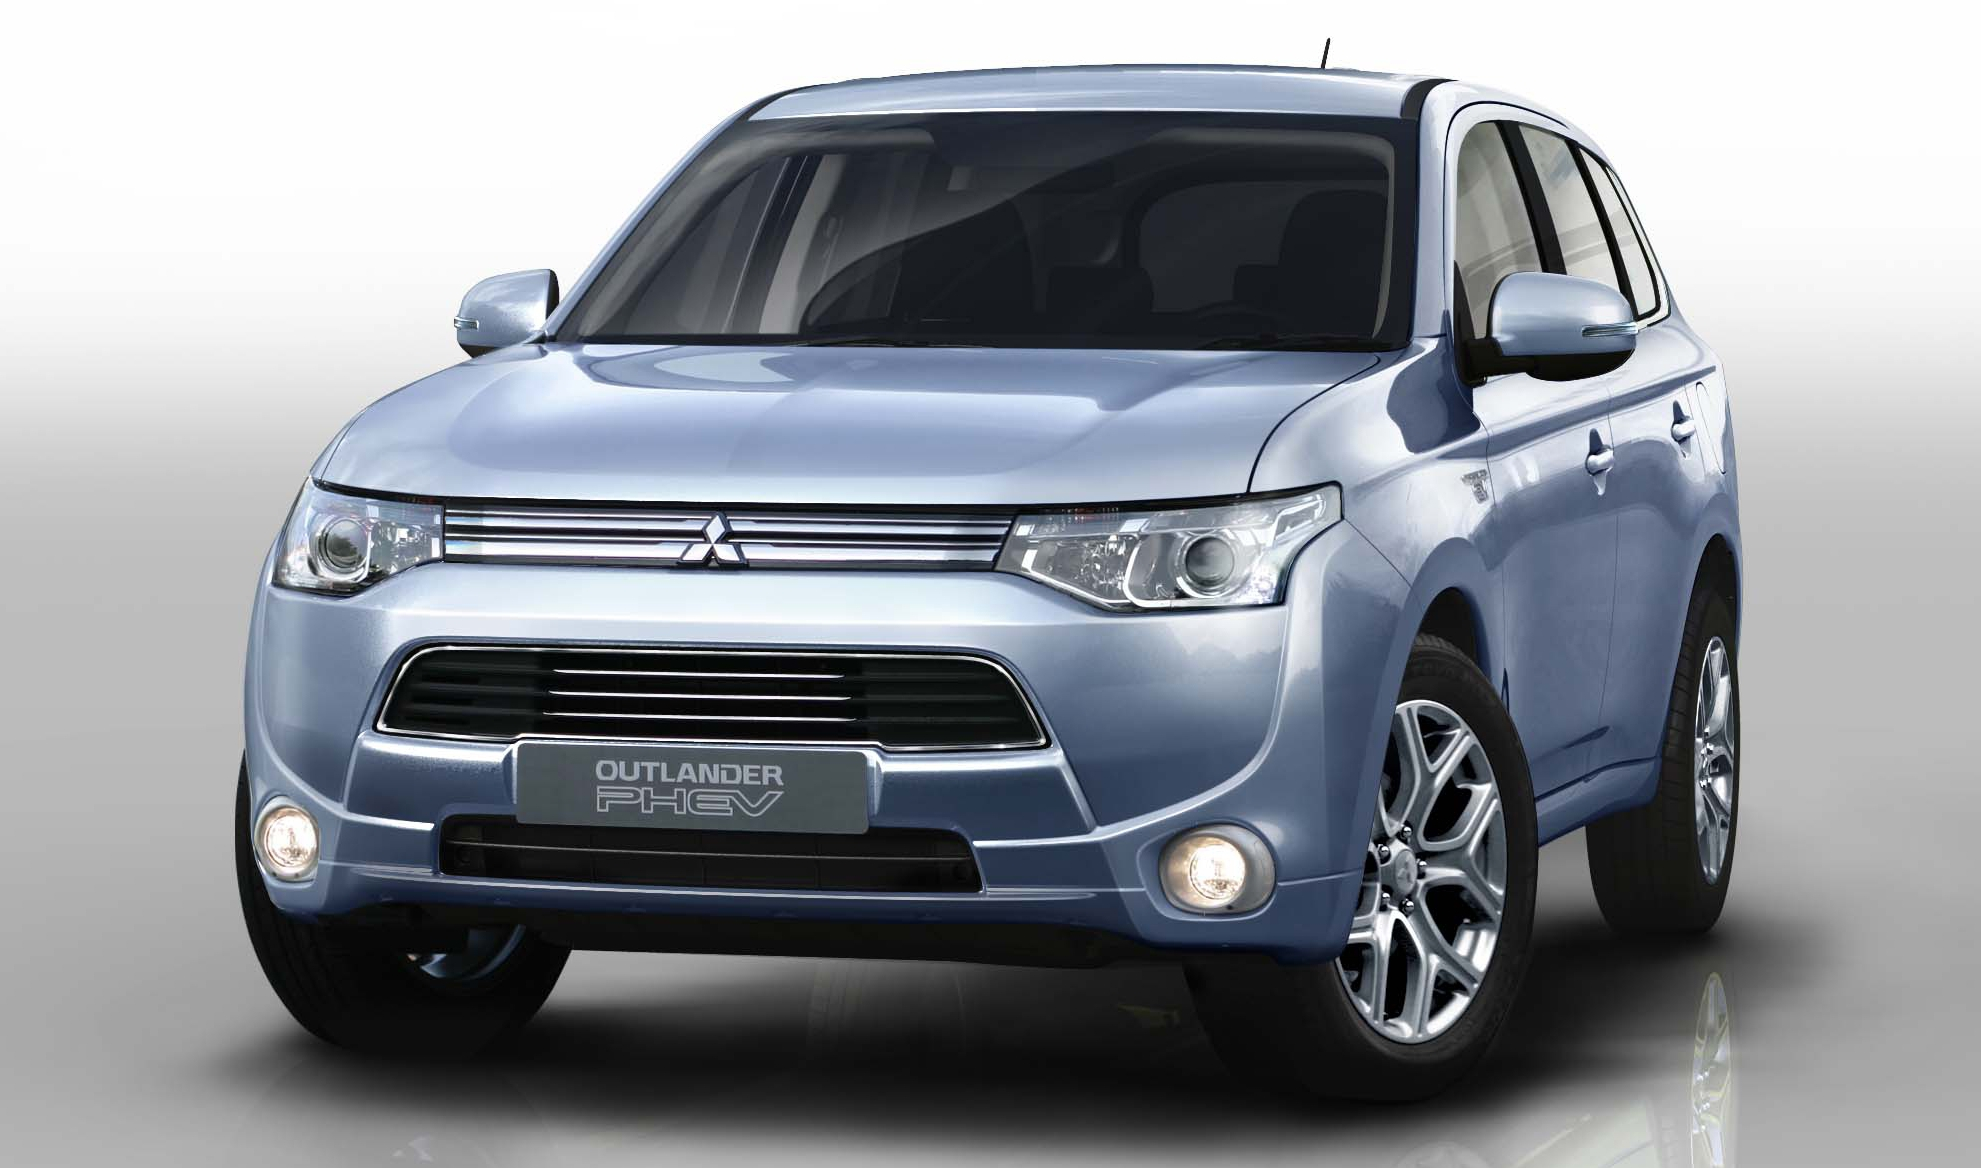 Mitsubishi Outlander PHEV to be launched in Malaysia by end 2013